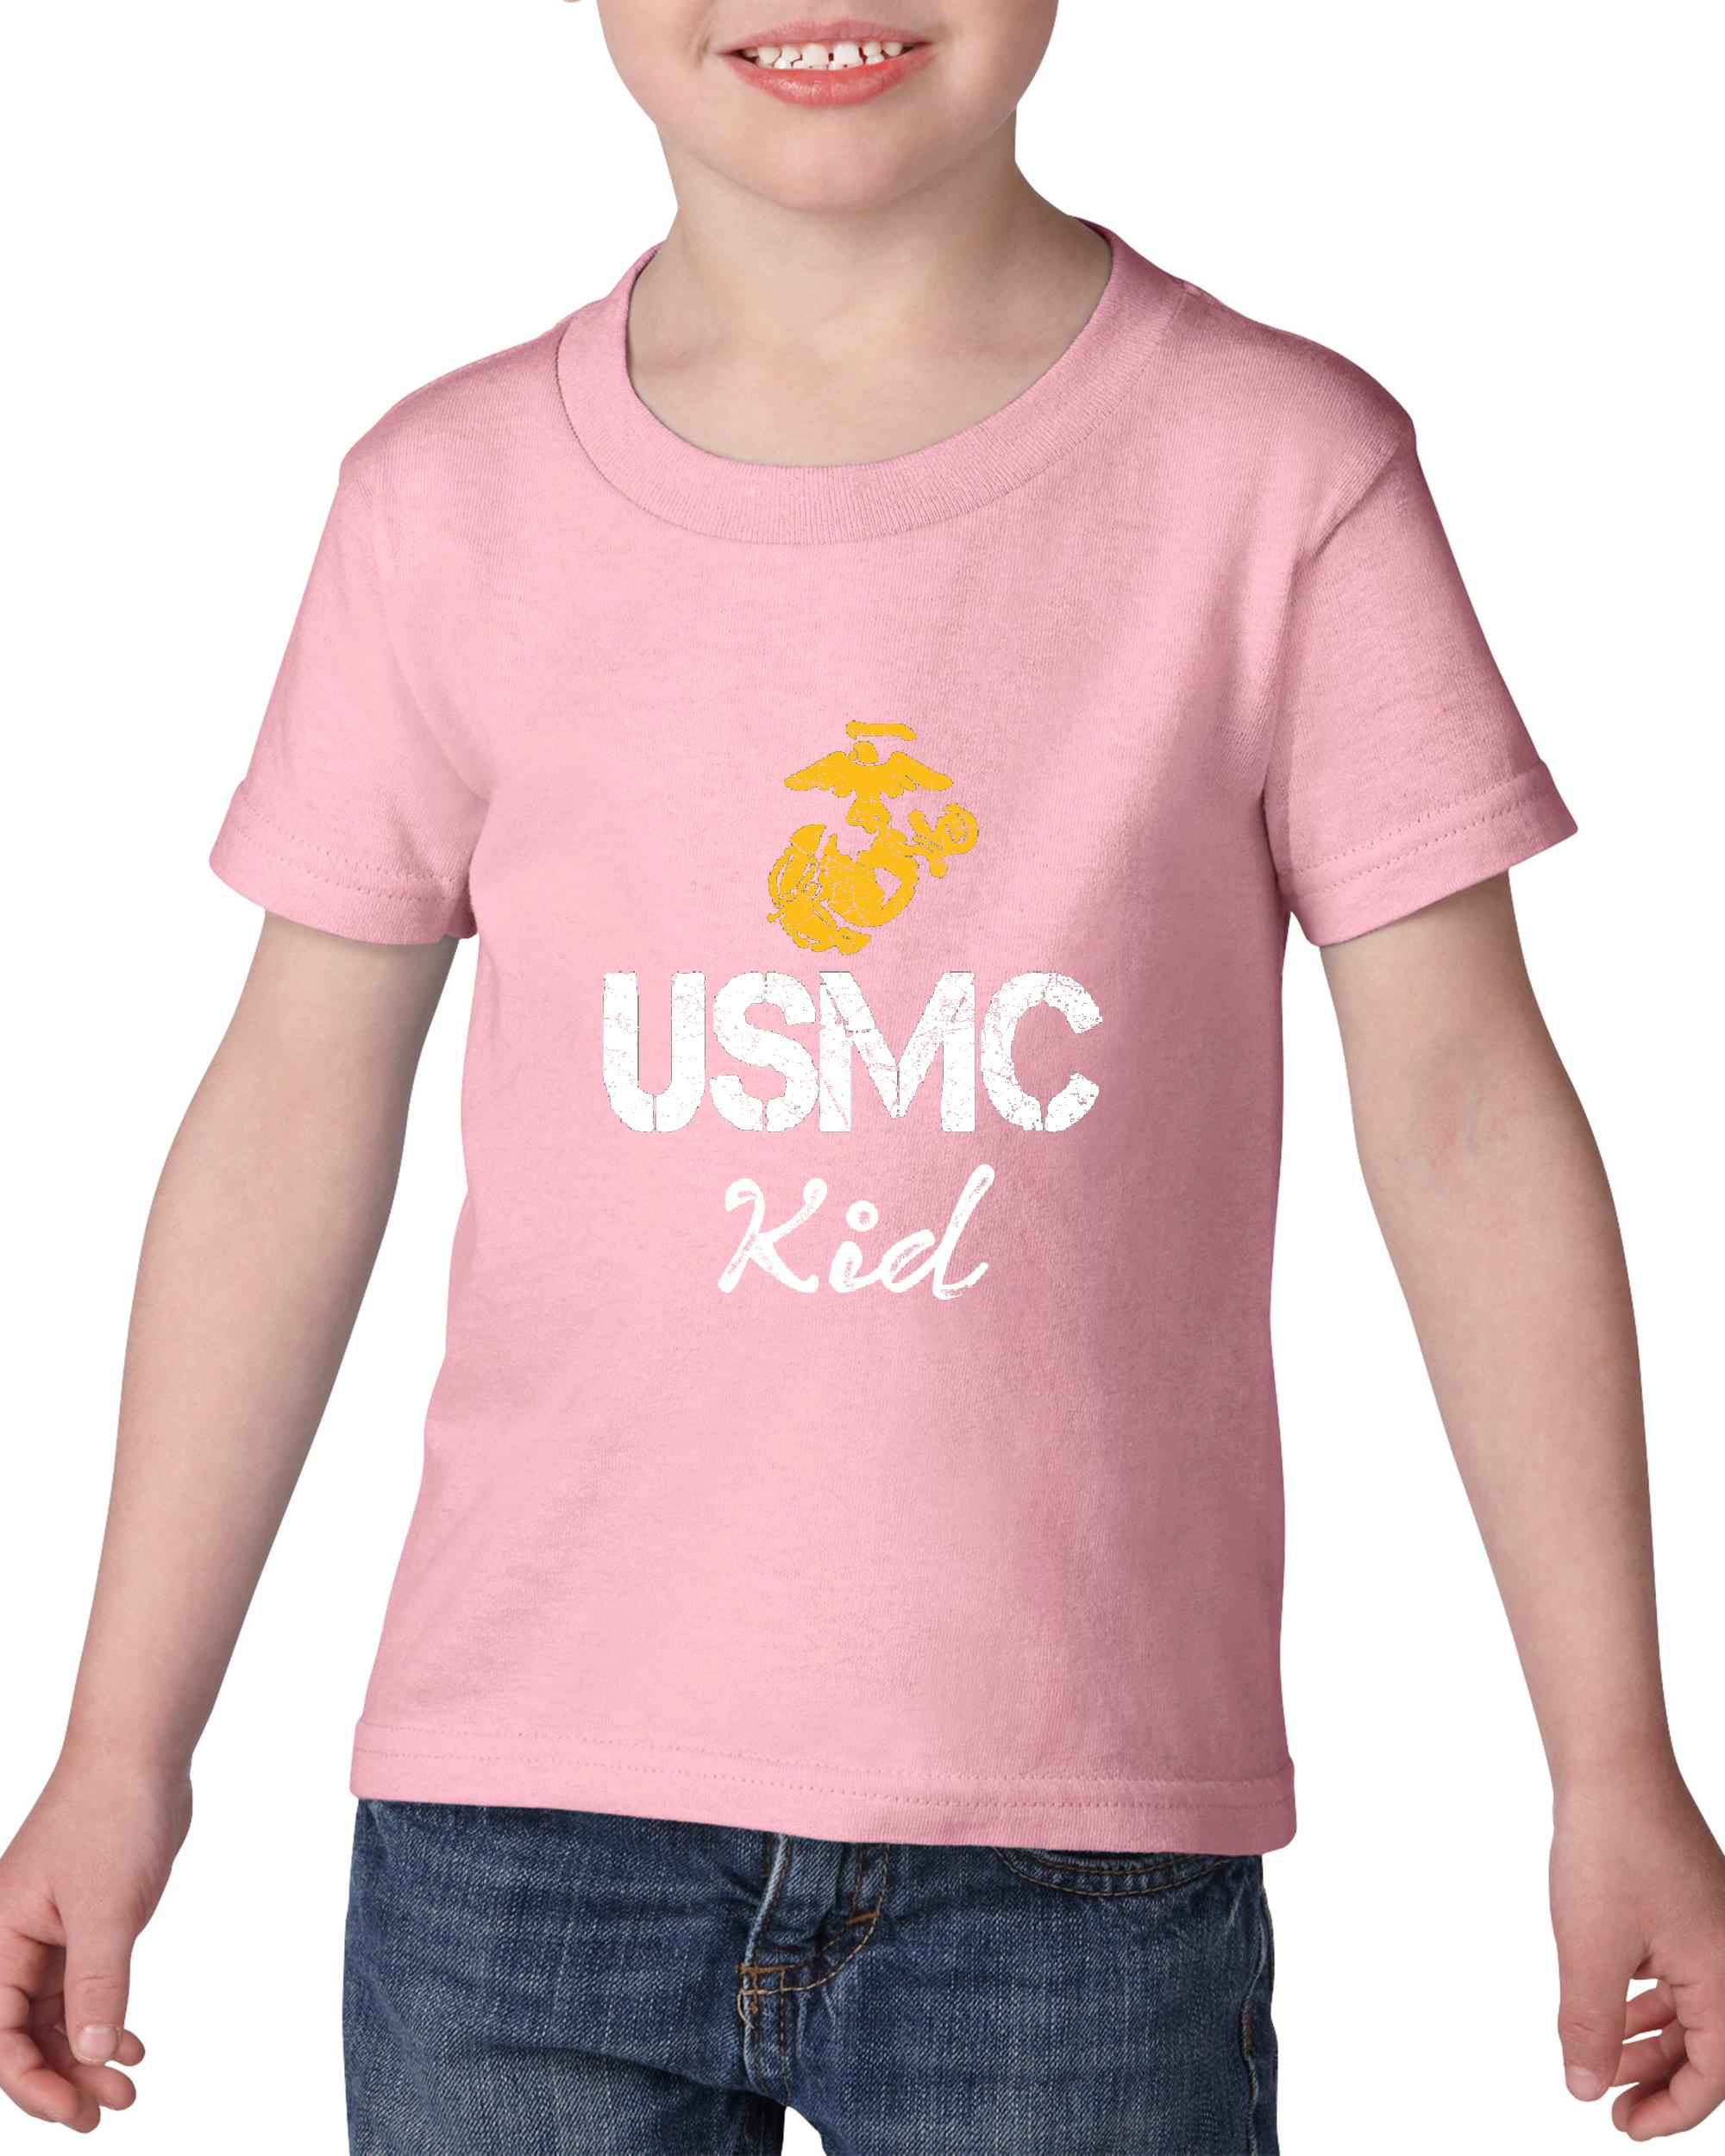 Artix USMC Kid Proud U.S. Marines Fight to Win Matching Couple w Mama Papa Gift for Kids Birthday Christmas Funny Party Heavy Cotton Toddler Kids T-Shirt Tee Clothing